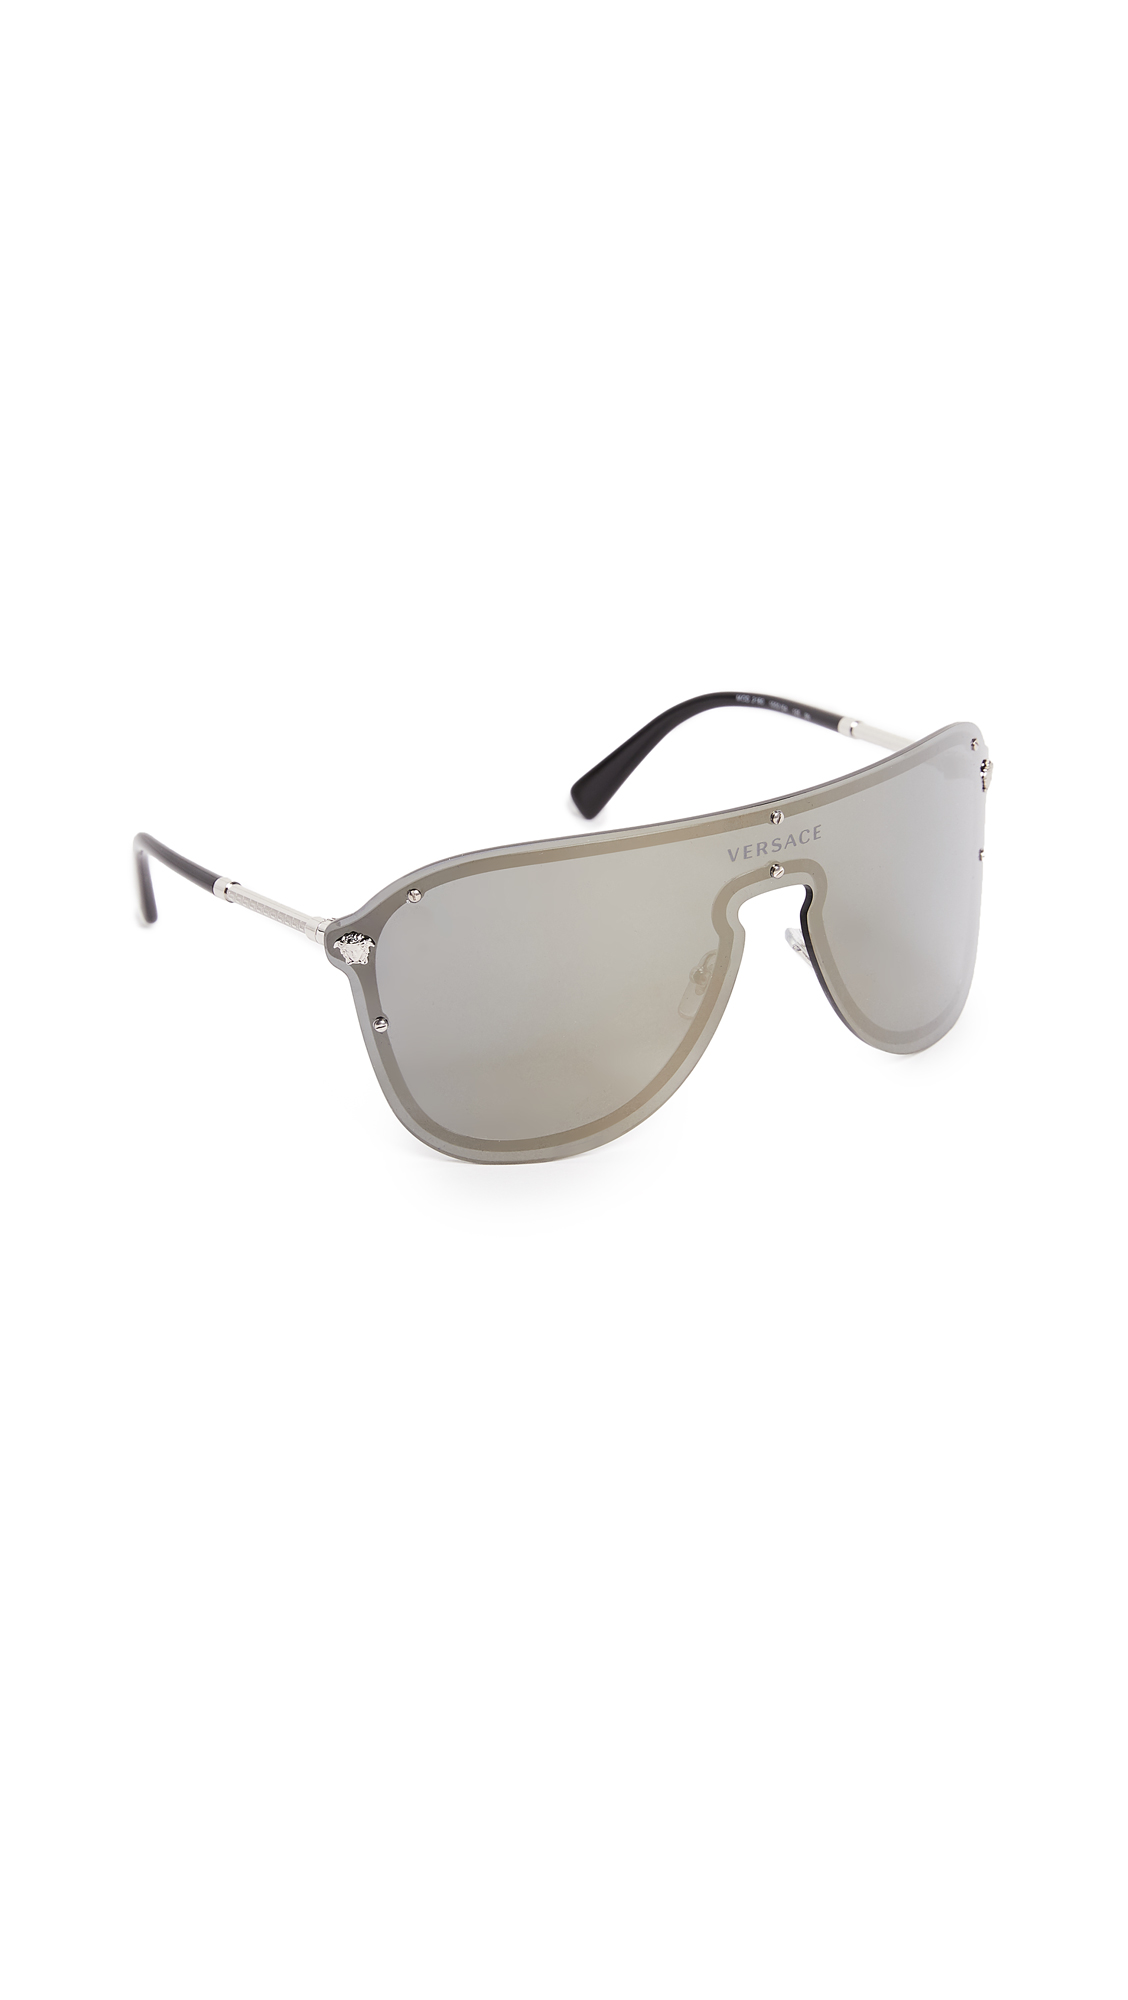 Versace Oversized Shield Sunglasses - Silver/Gold